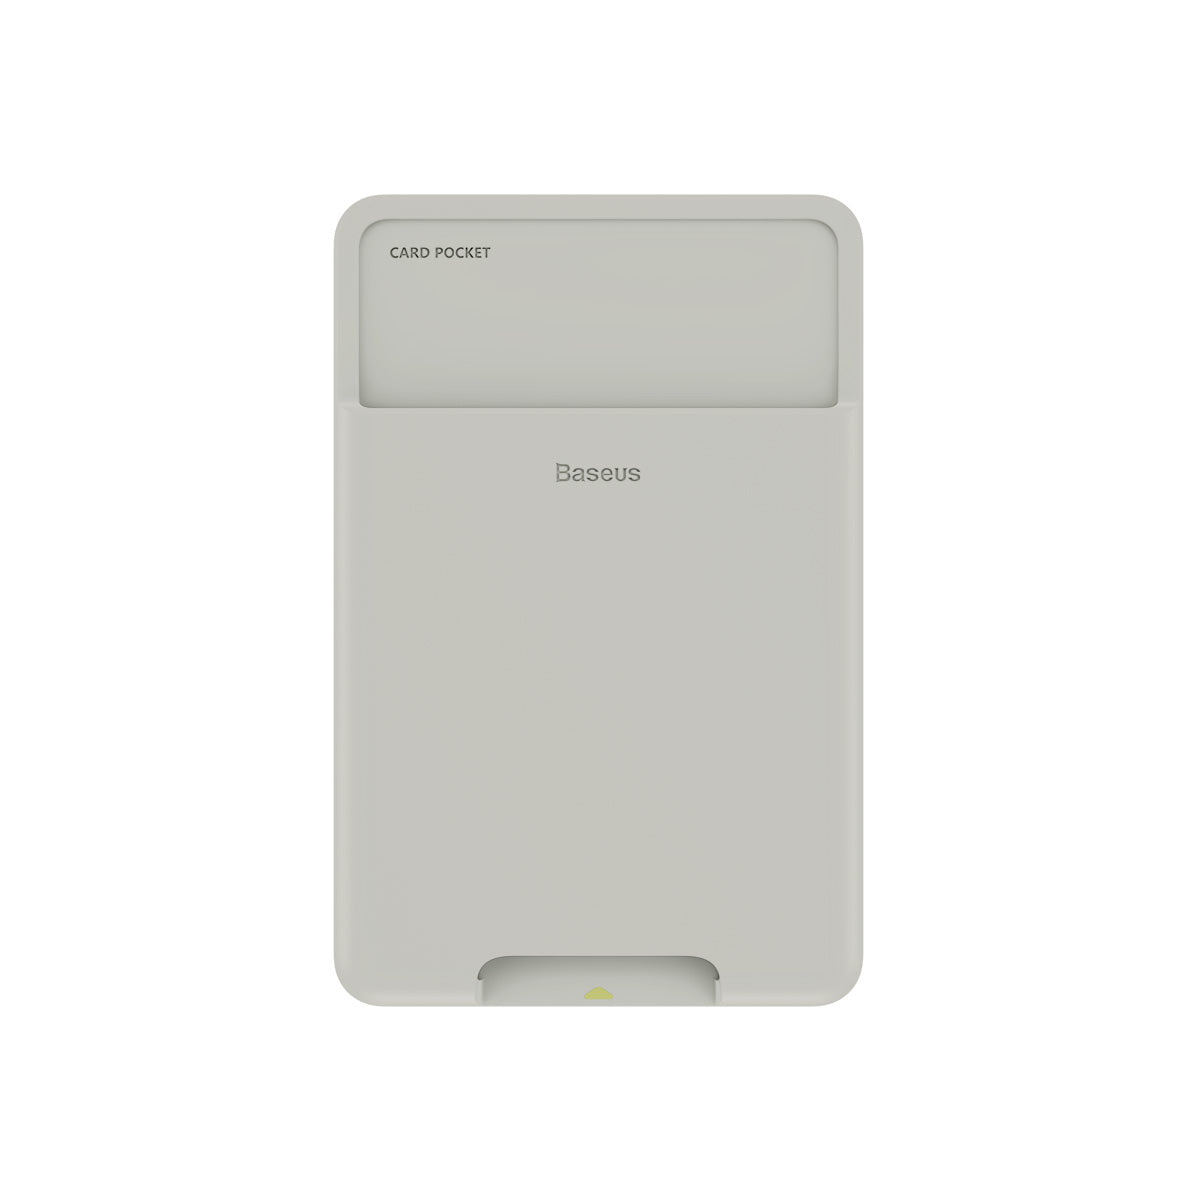 Baseus_Back_Sticker_Silicon_Card_Holder_light_grey_S767TPN9XU4P.jpg